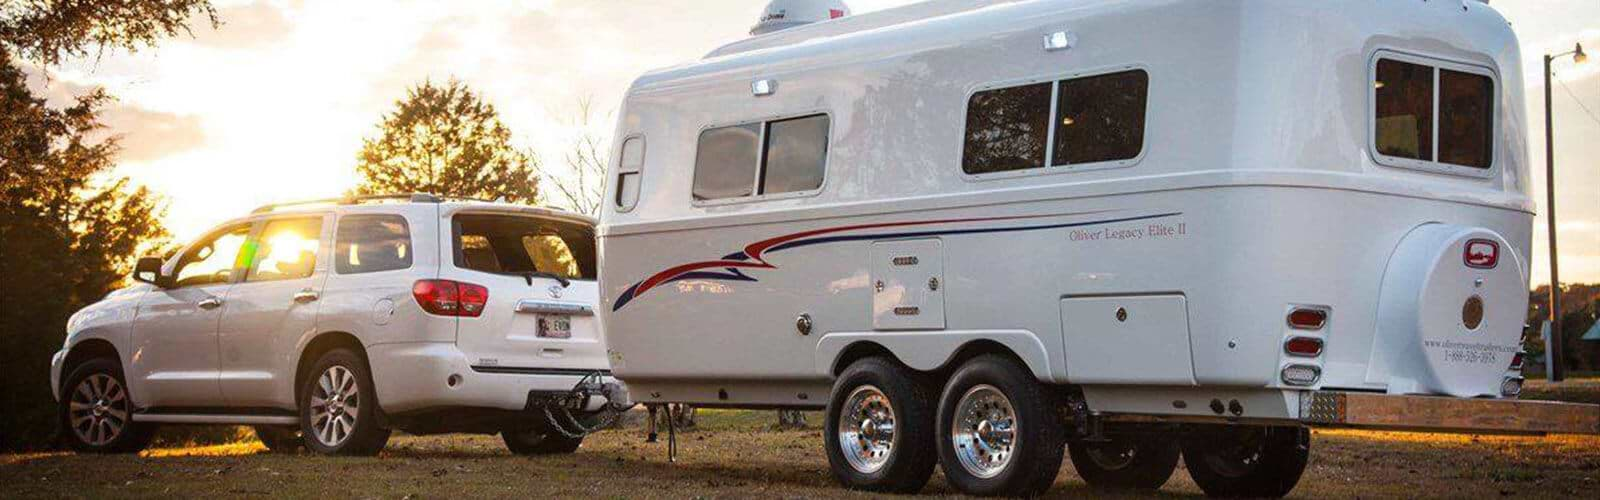 compare travel trailers airstream escape oliver